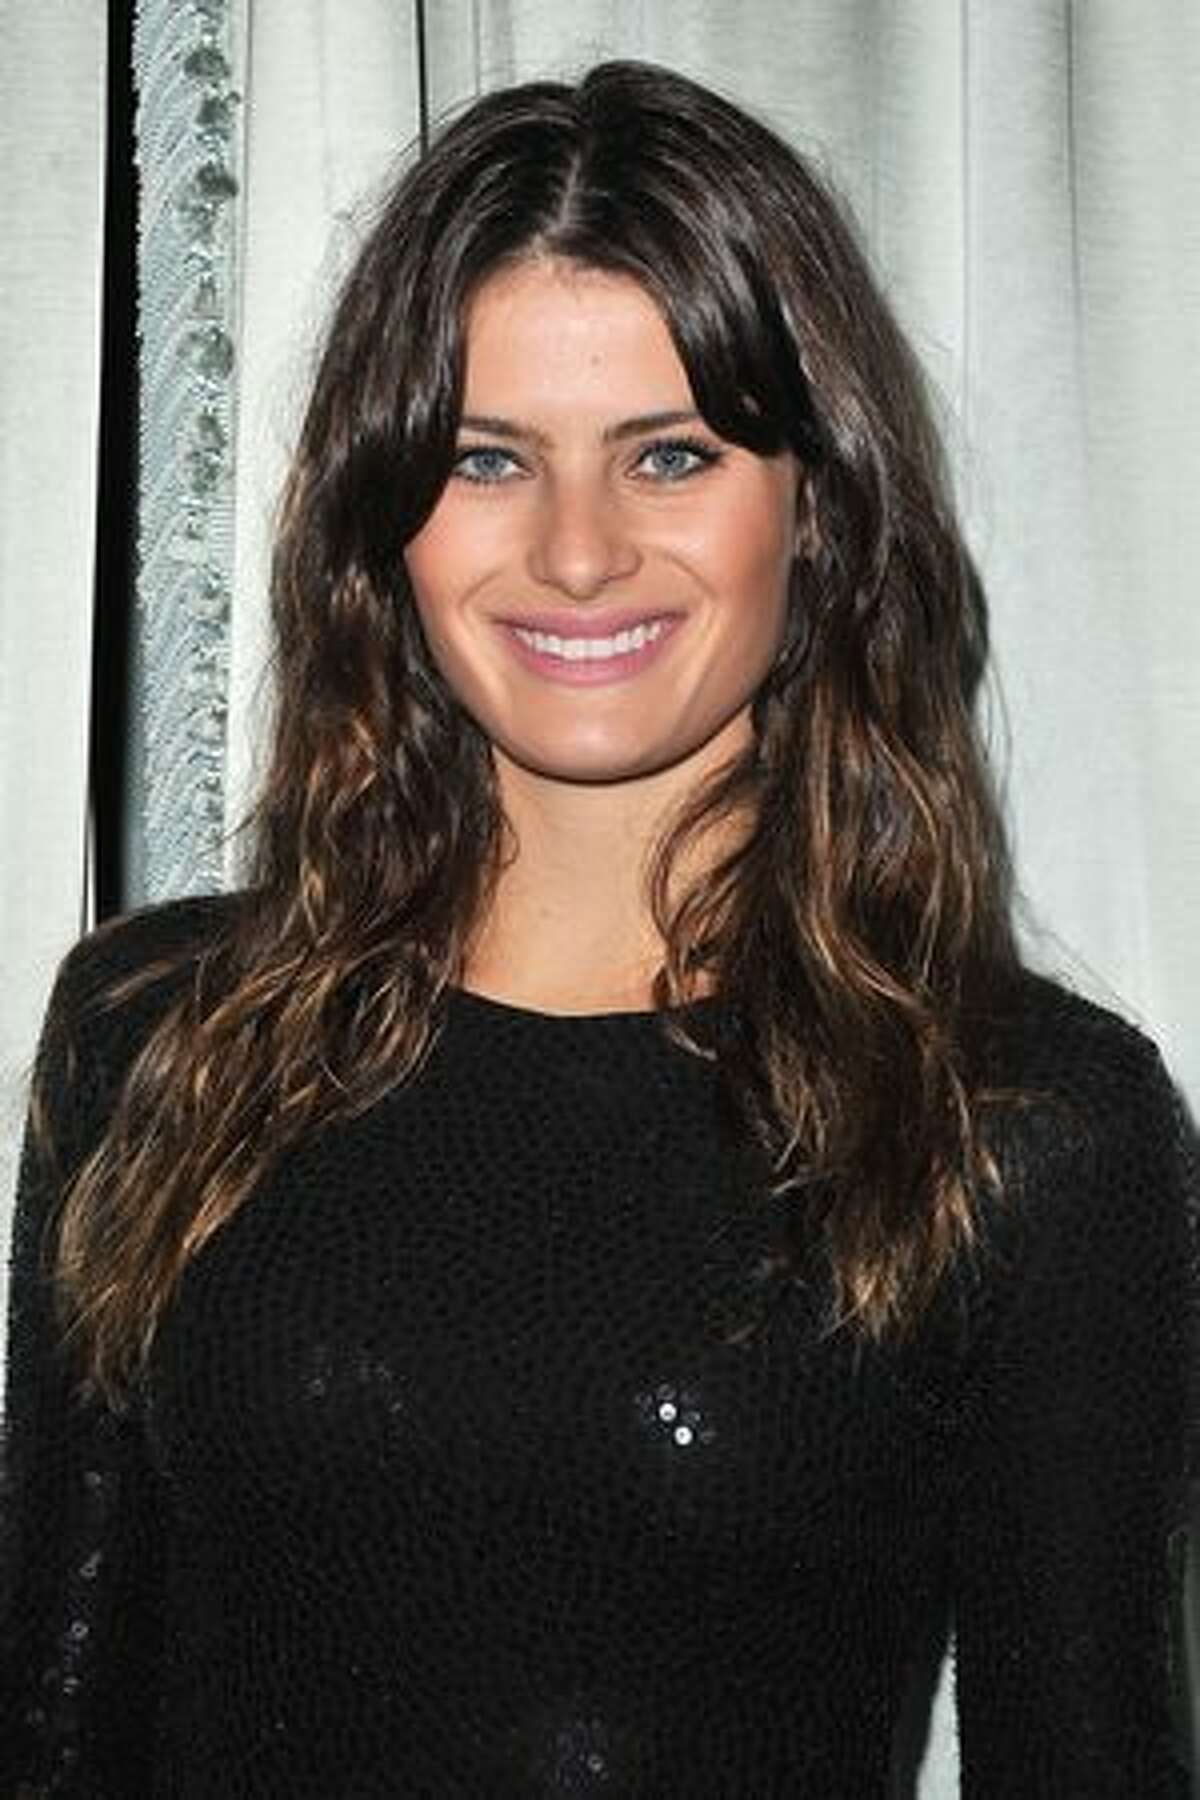 Isabeli Fontana attends a cocktail and dinner hosted in honor of designer Michael Kors during Paris Fashion Week Fall/Winter 2012 at the Embassy Of The United States in Paris, France.